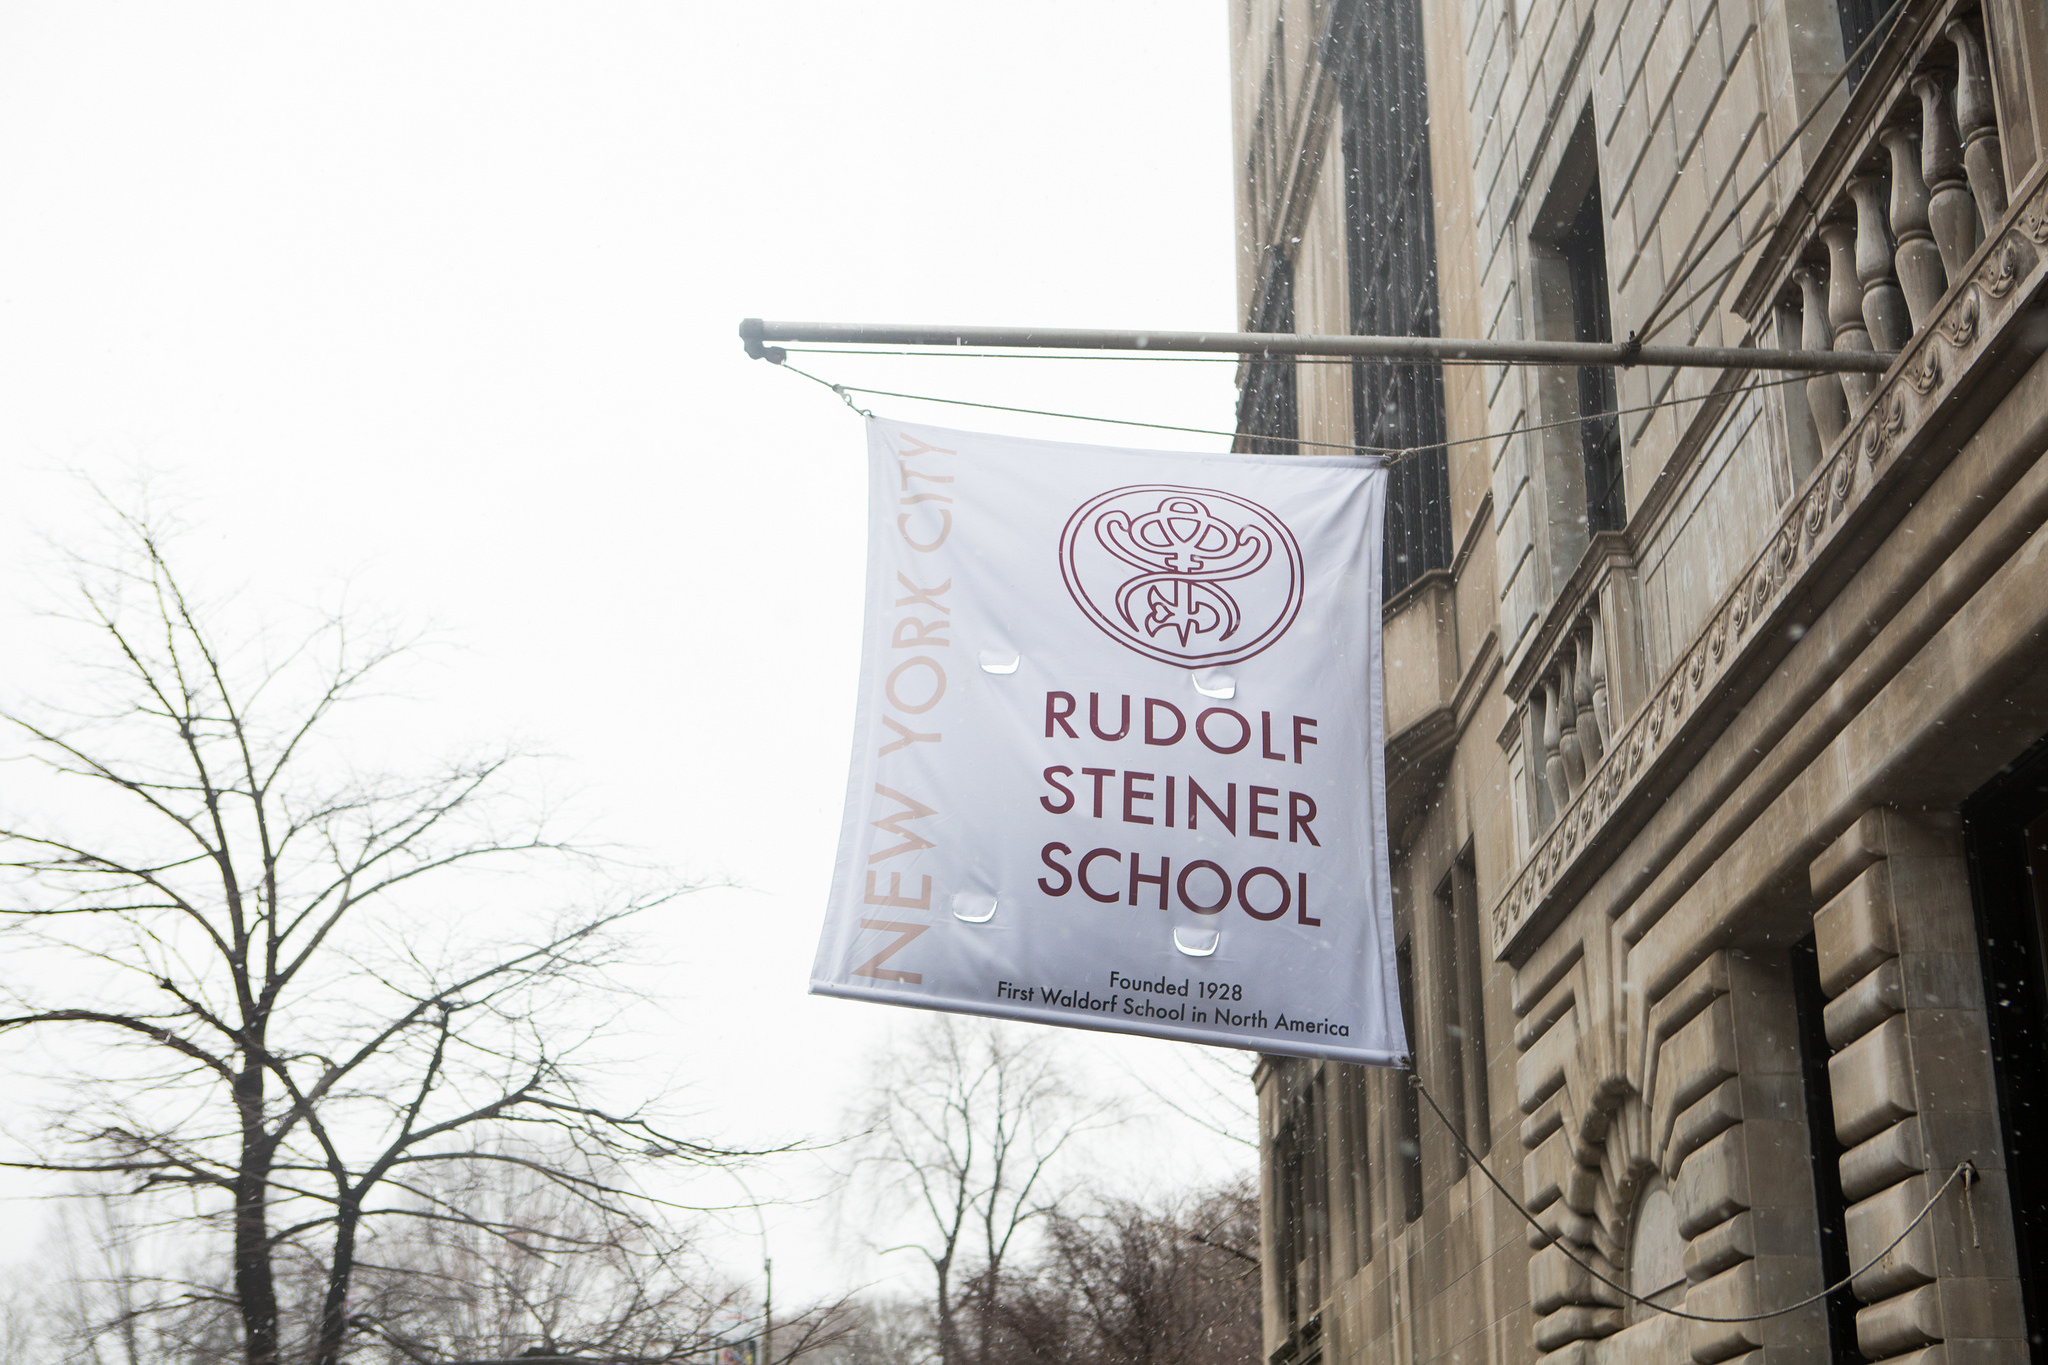 Rudolf Steiner School [East Side]